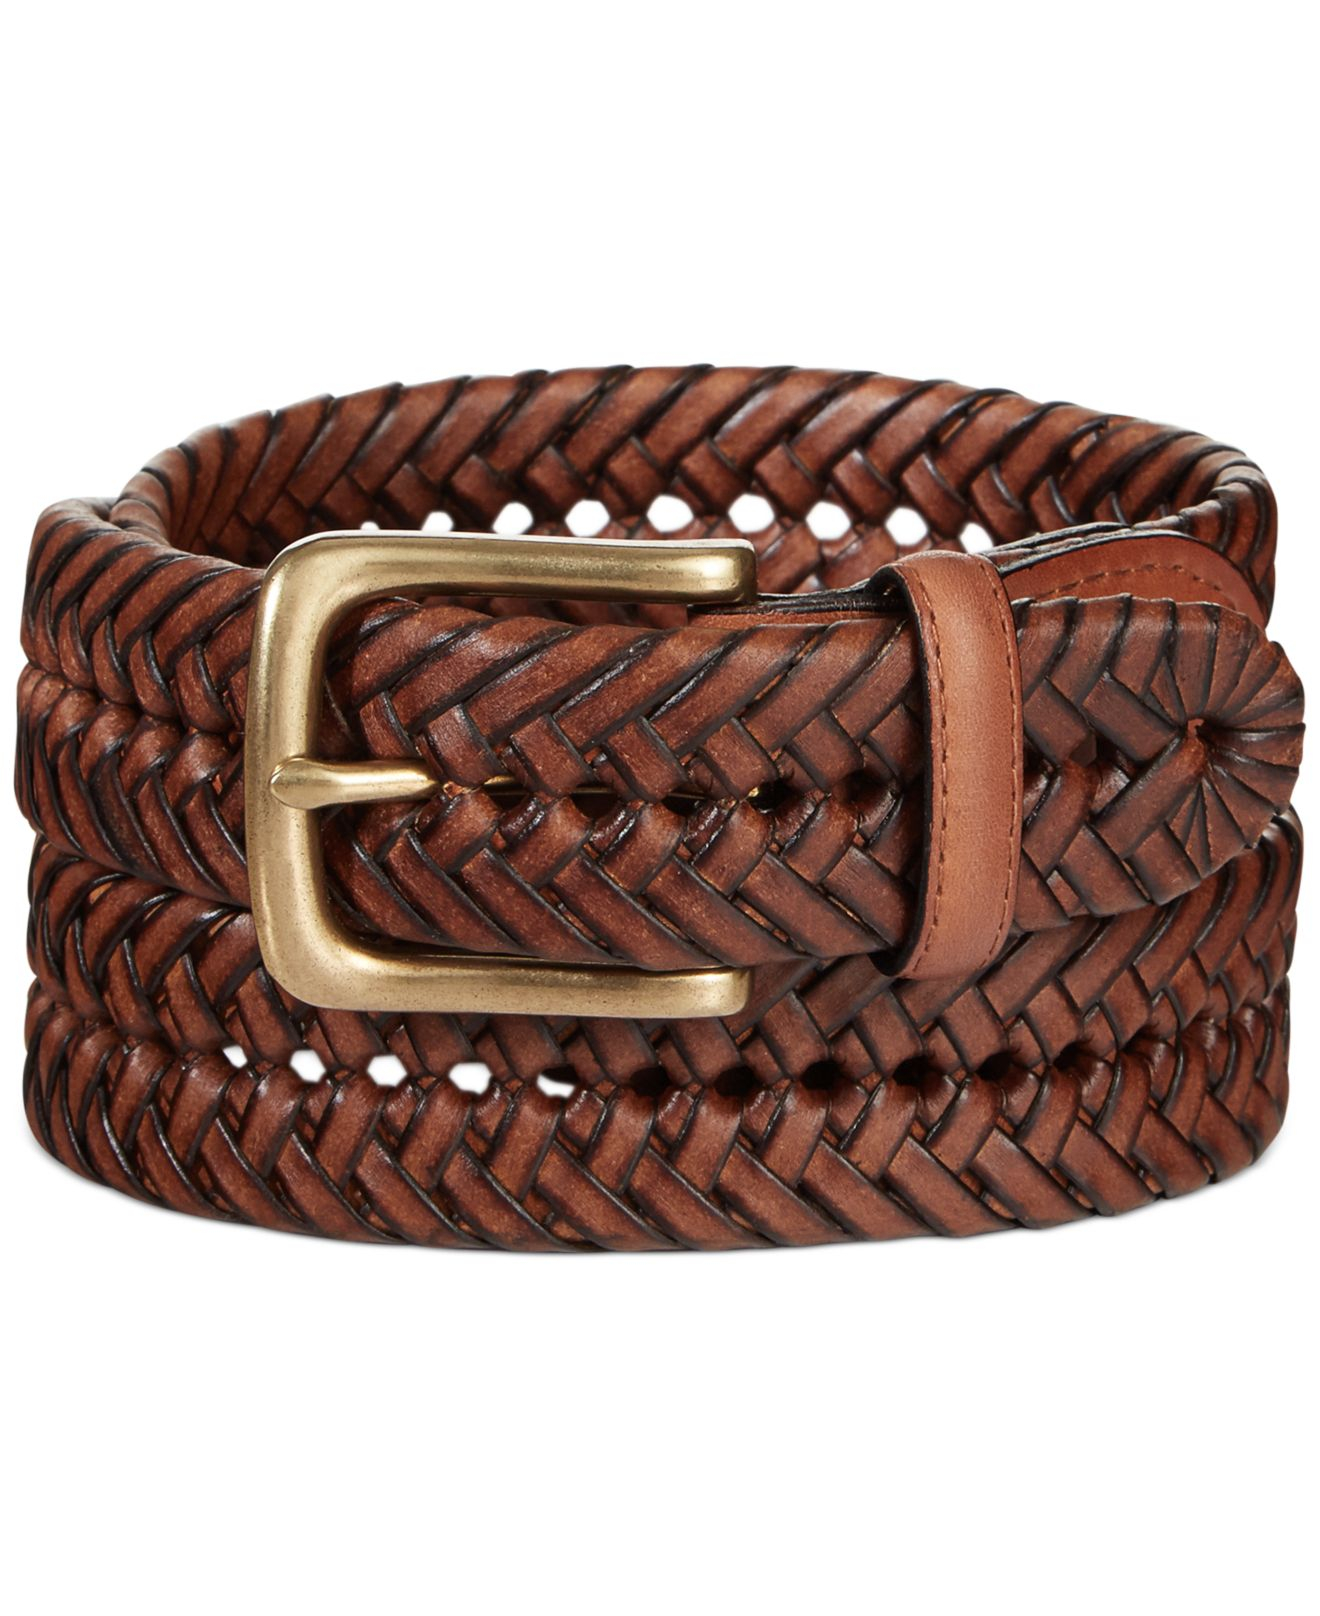 Find great deals on eBay for mens braided leather belt. Shop with confidence.